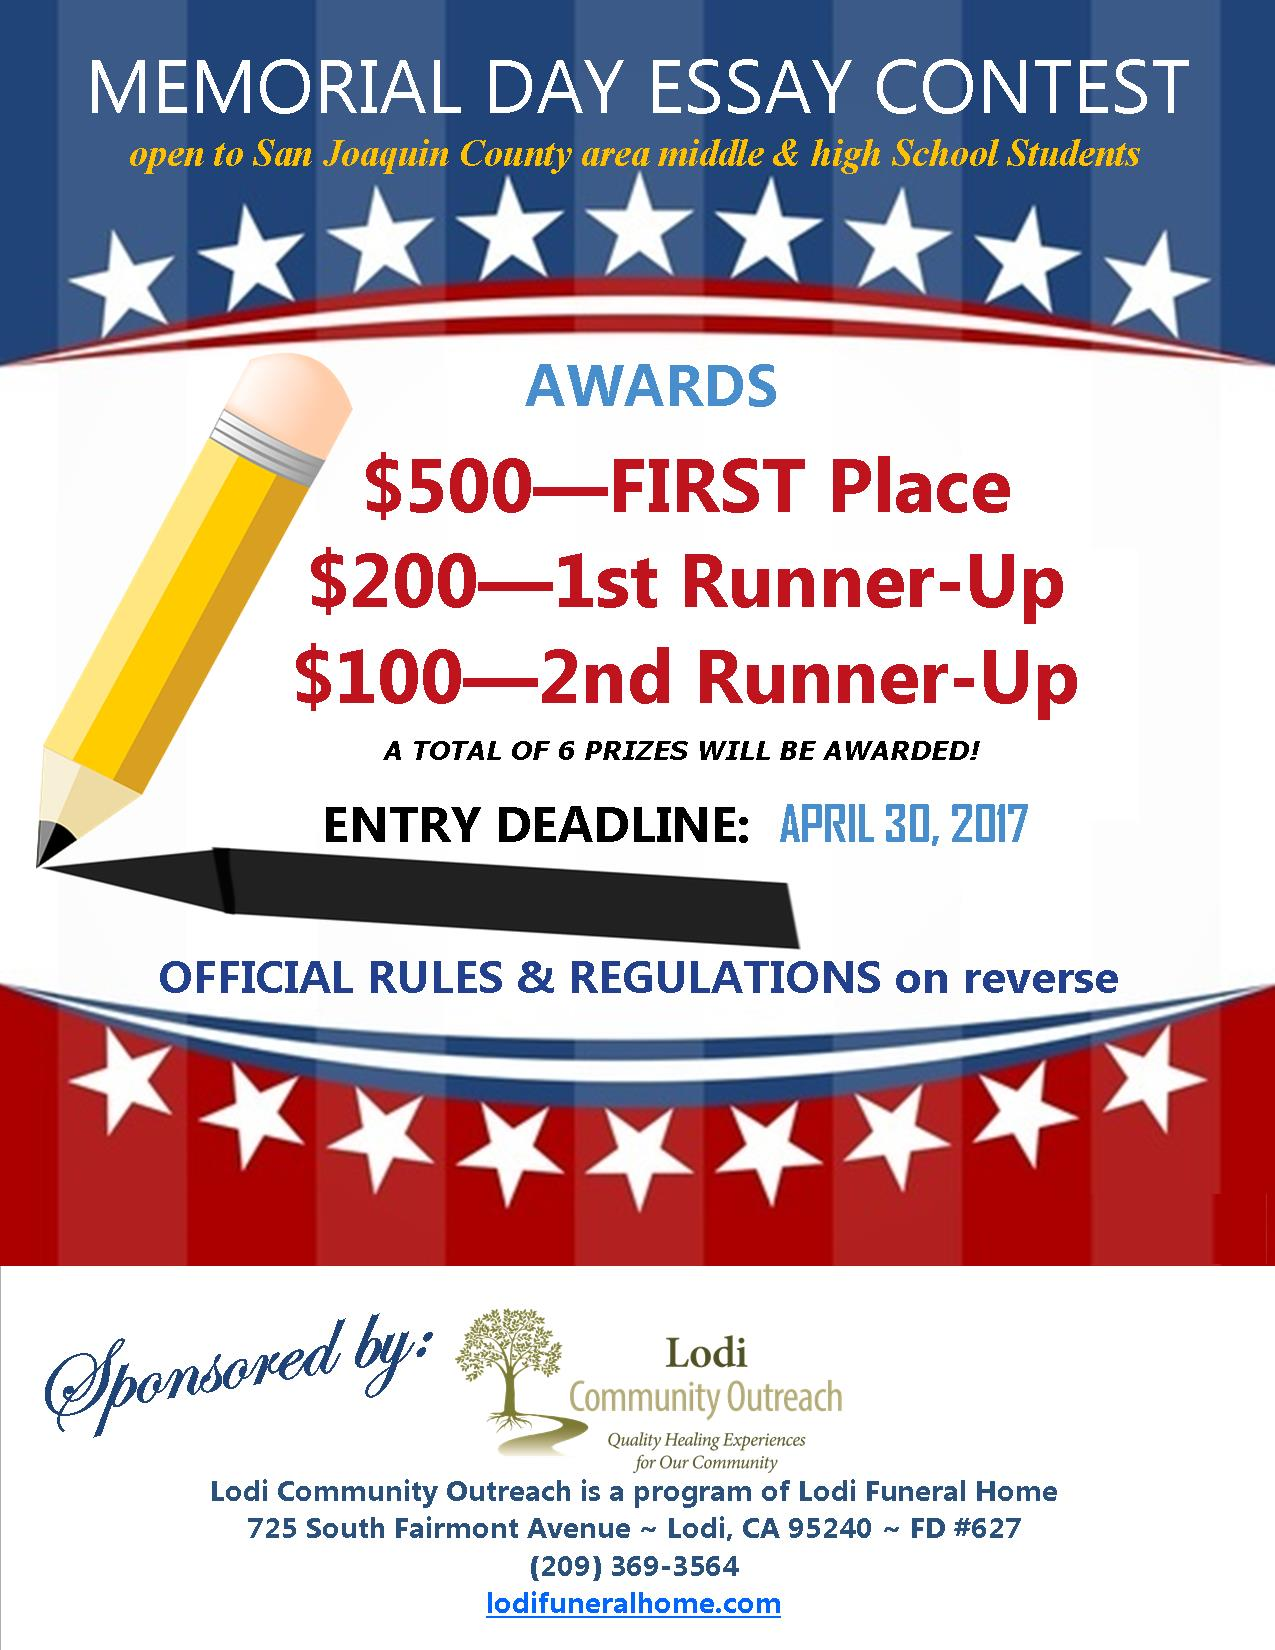 memorial day youth essay contest tickets thu mar 30 2017 at 7 winning essays will be featured on the lodi funeral homes website social media pages and other related print and electronic media